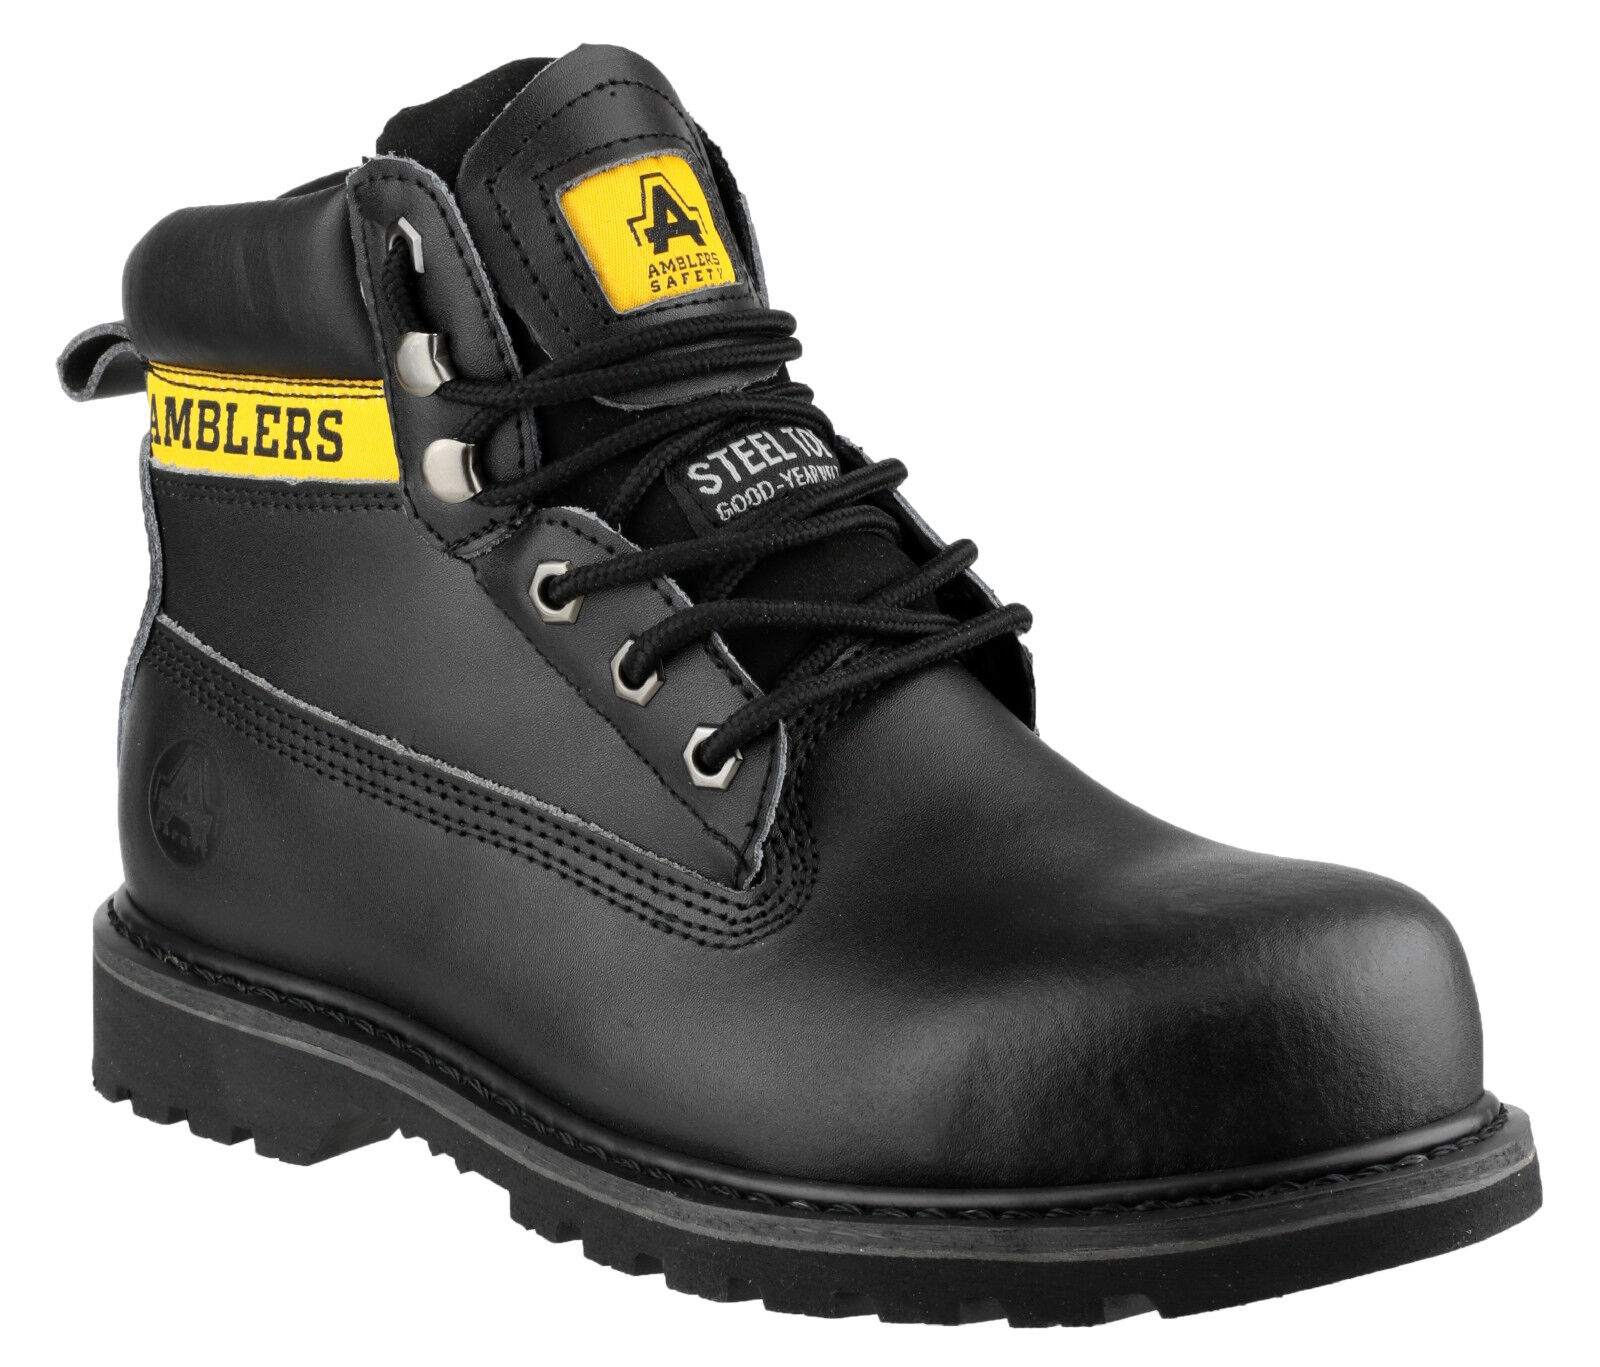 Hombre Safety botas / Negro Leather Steel Toe Toe Toe Cap Laced Work Industrial Amblers 5025ab